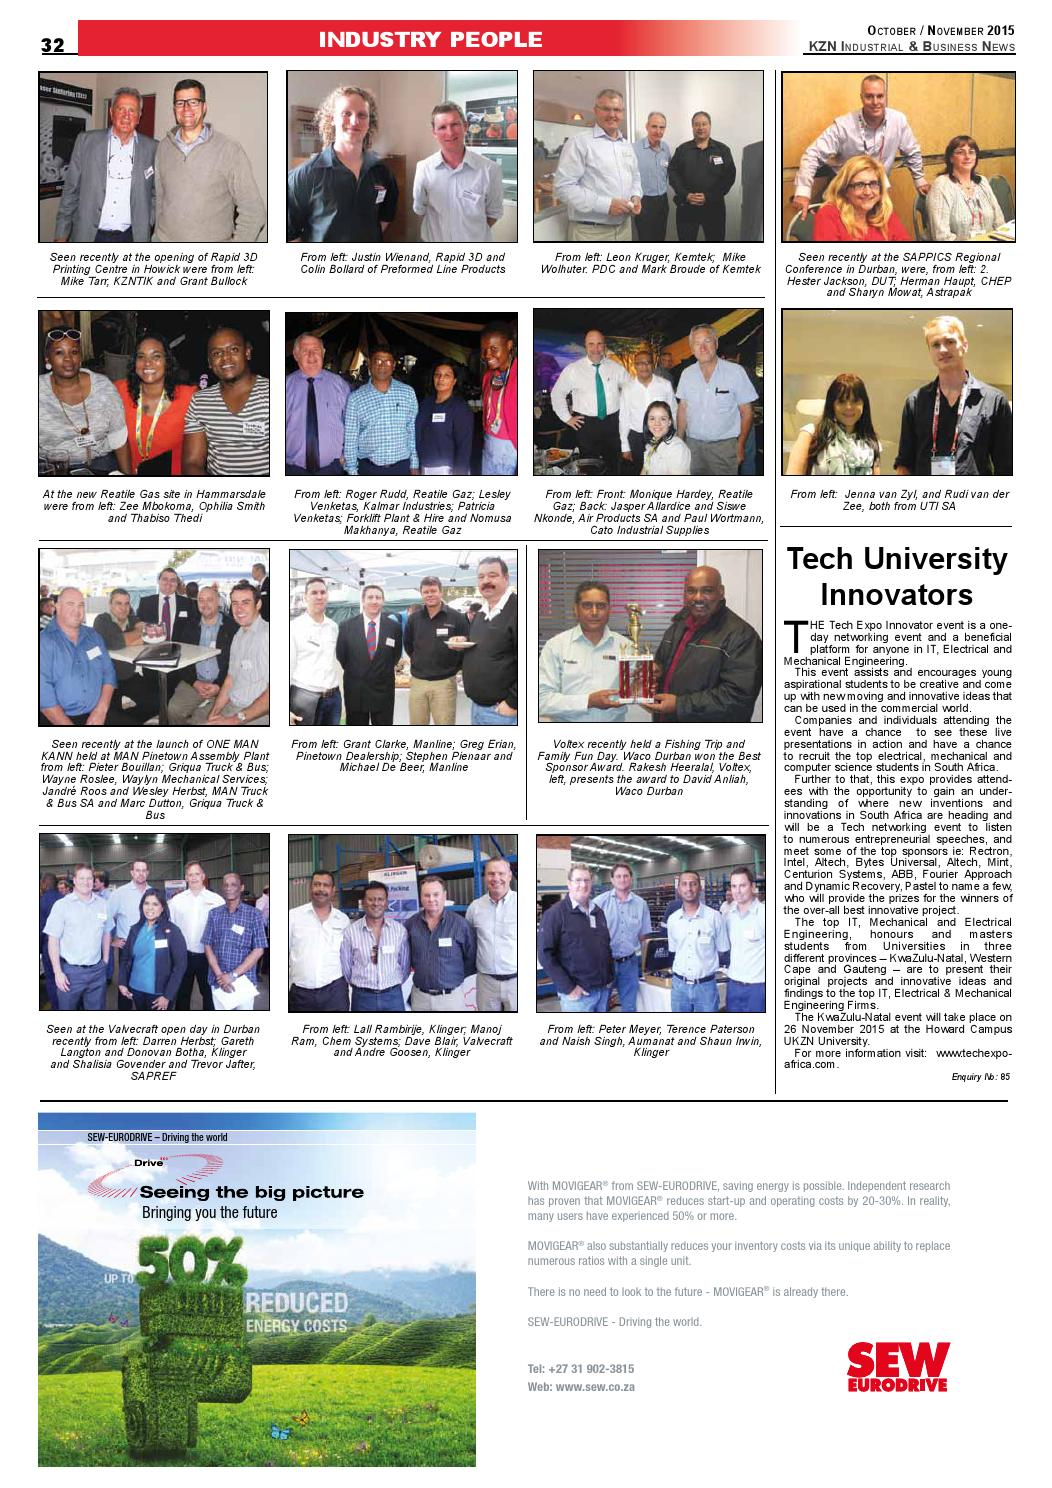 Kzn industrial & business news issue 95 by The Media